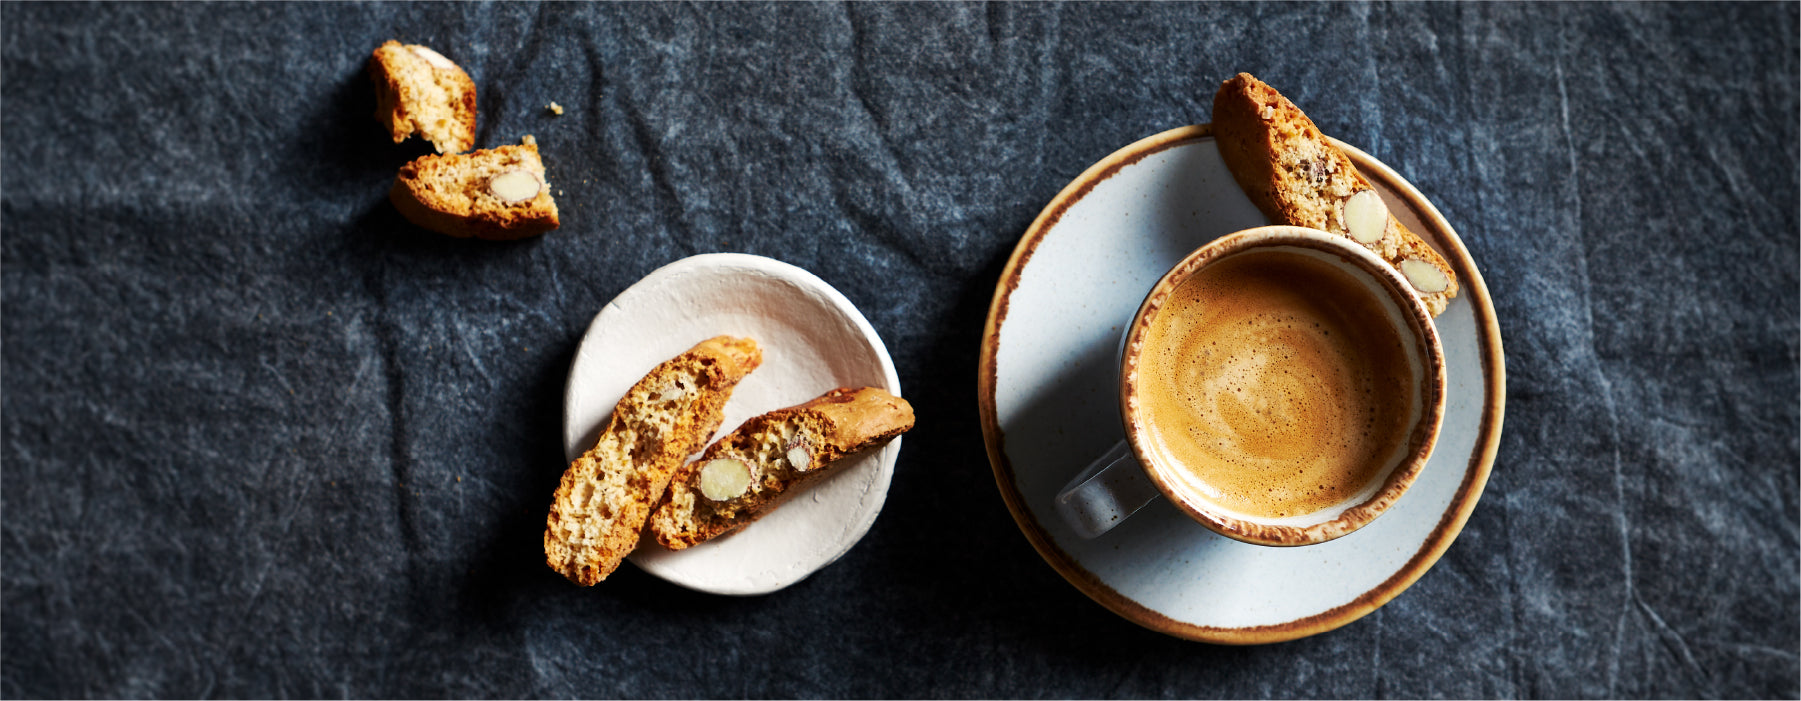 Coffee Hits Different with this Biscotti Recipe - EspressoWorks